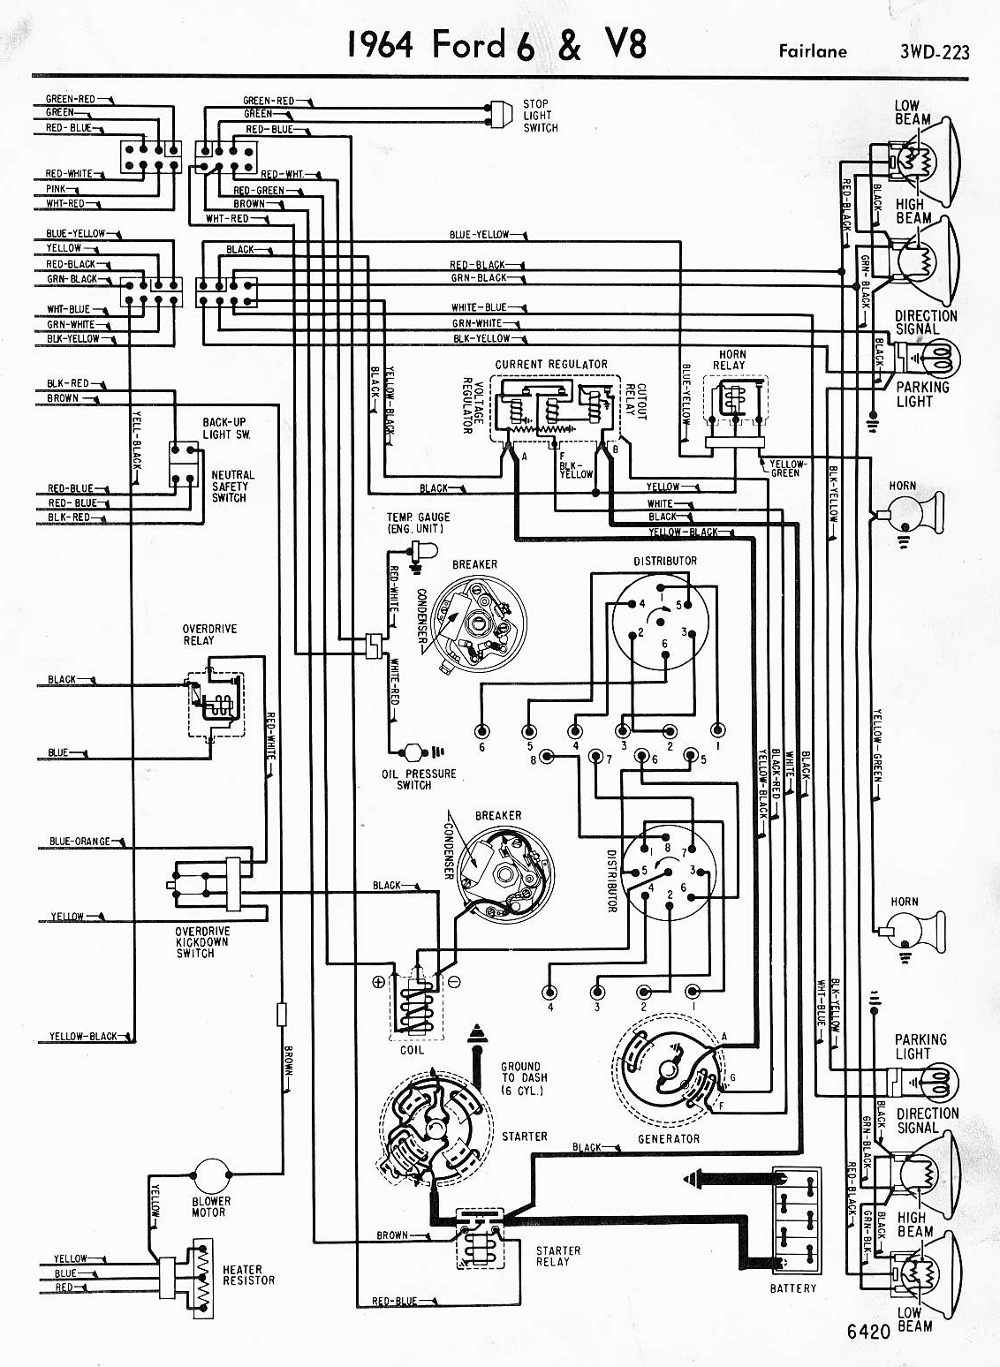 F250 Wiring Schematic - Massey Feguson Tractor Ignition Switch Wiring  Diagram for Wiring Diagram SchematicsWiring Diagram Schematics